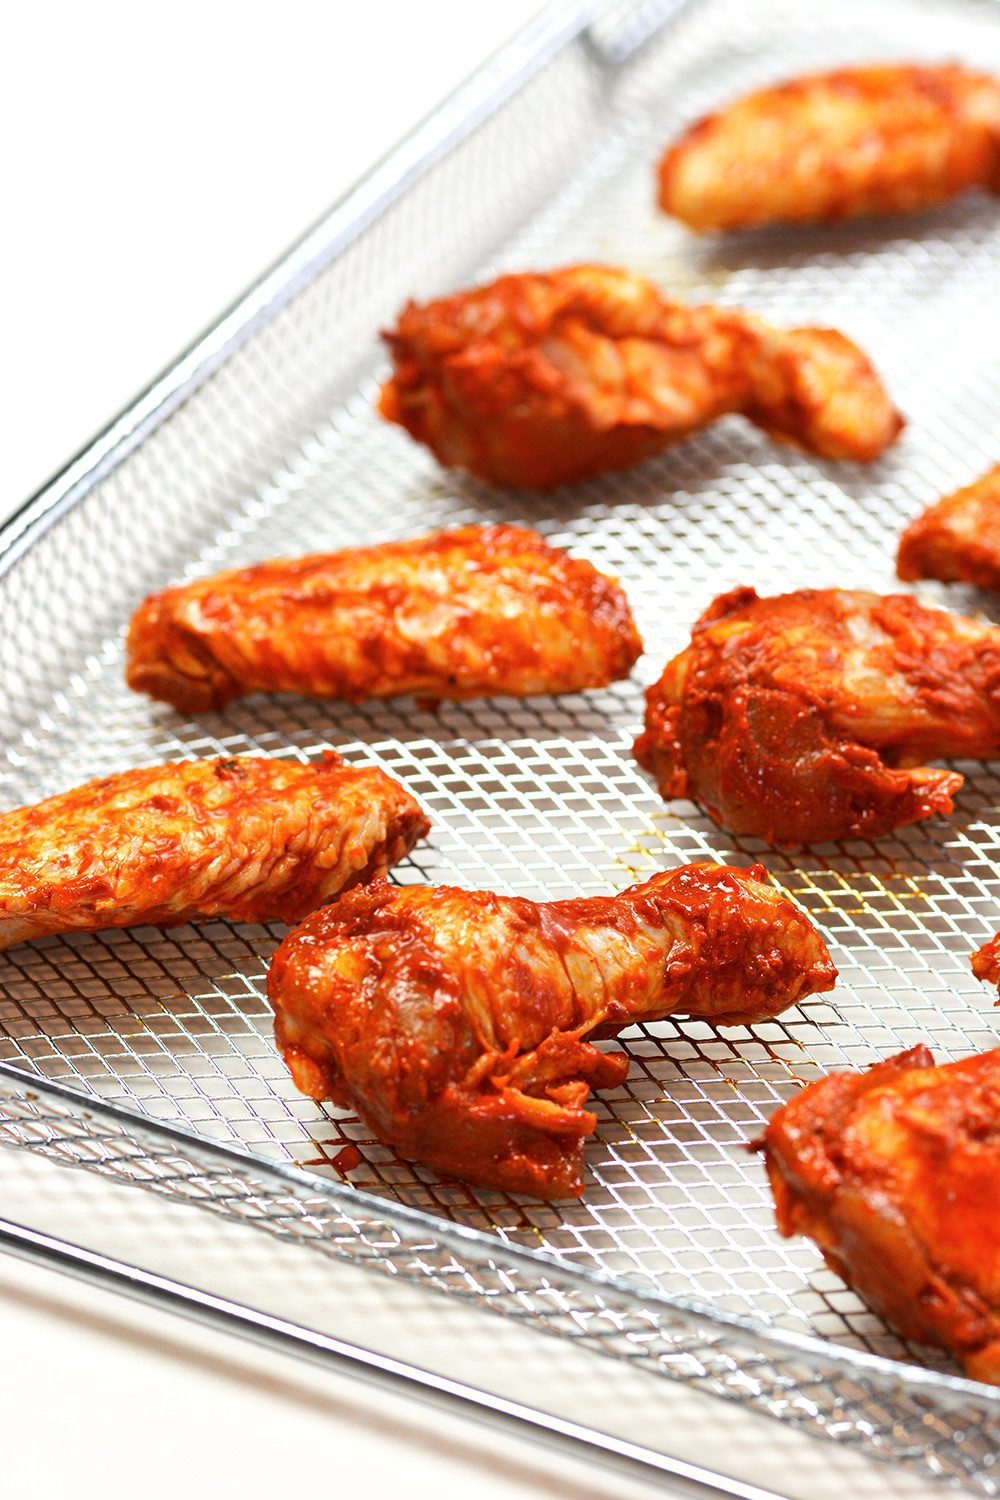 Raw chicken wings on an air fryer basket